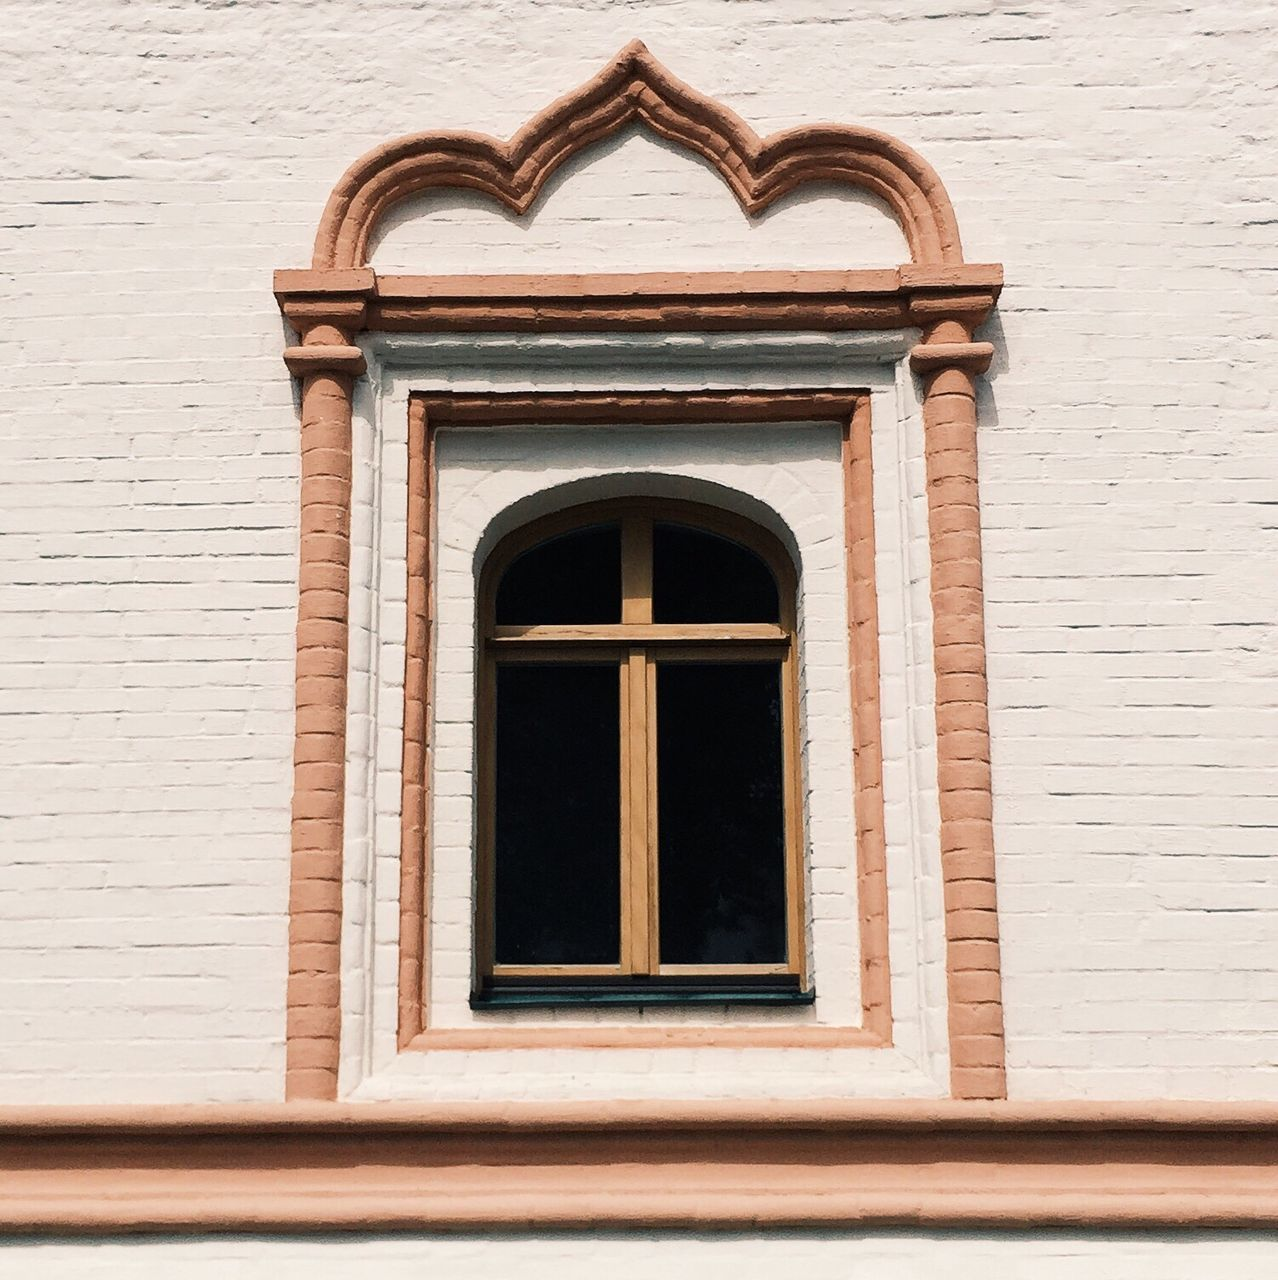 window, building exterior, architecture, built structure, day, no people, outdoors, arch